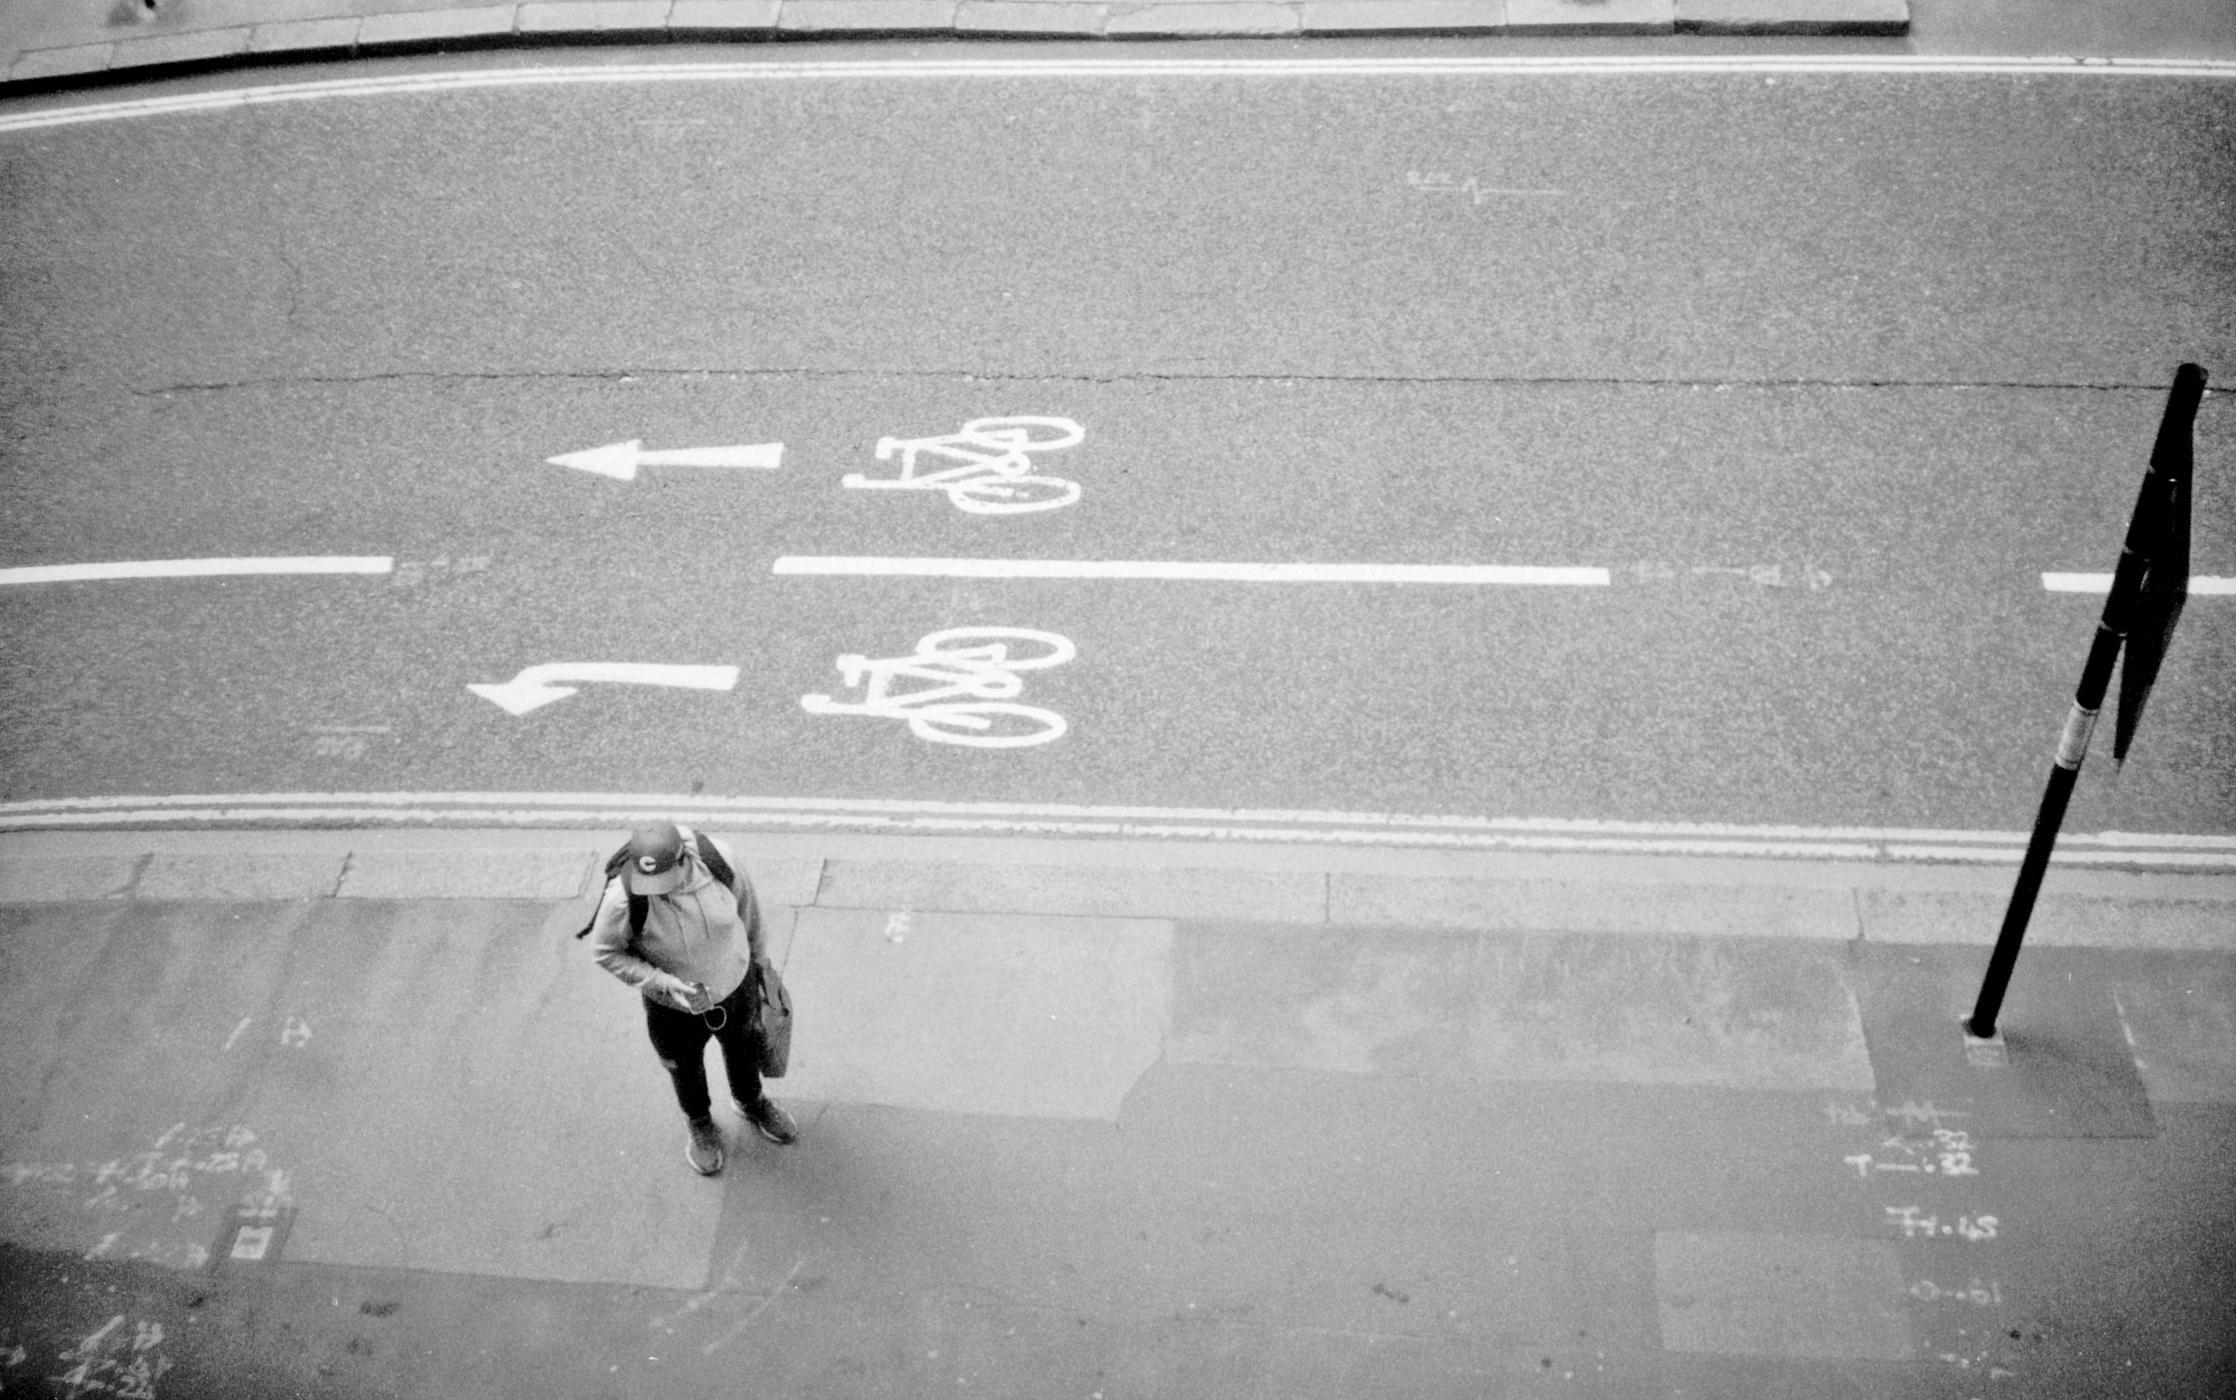 Man by road arrows seen from above (Pic: Stephen Dowling)